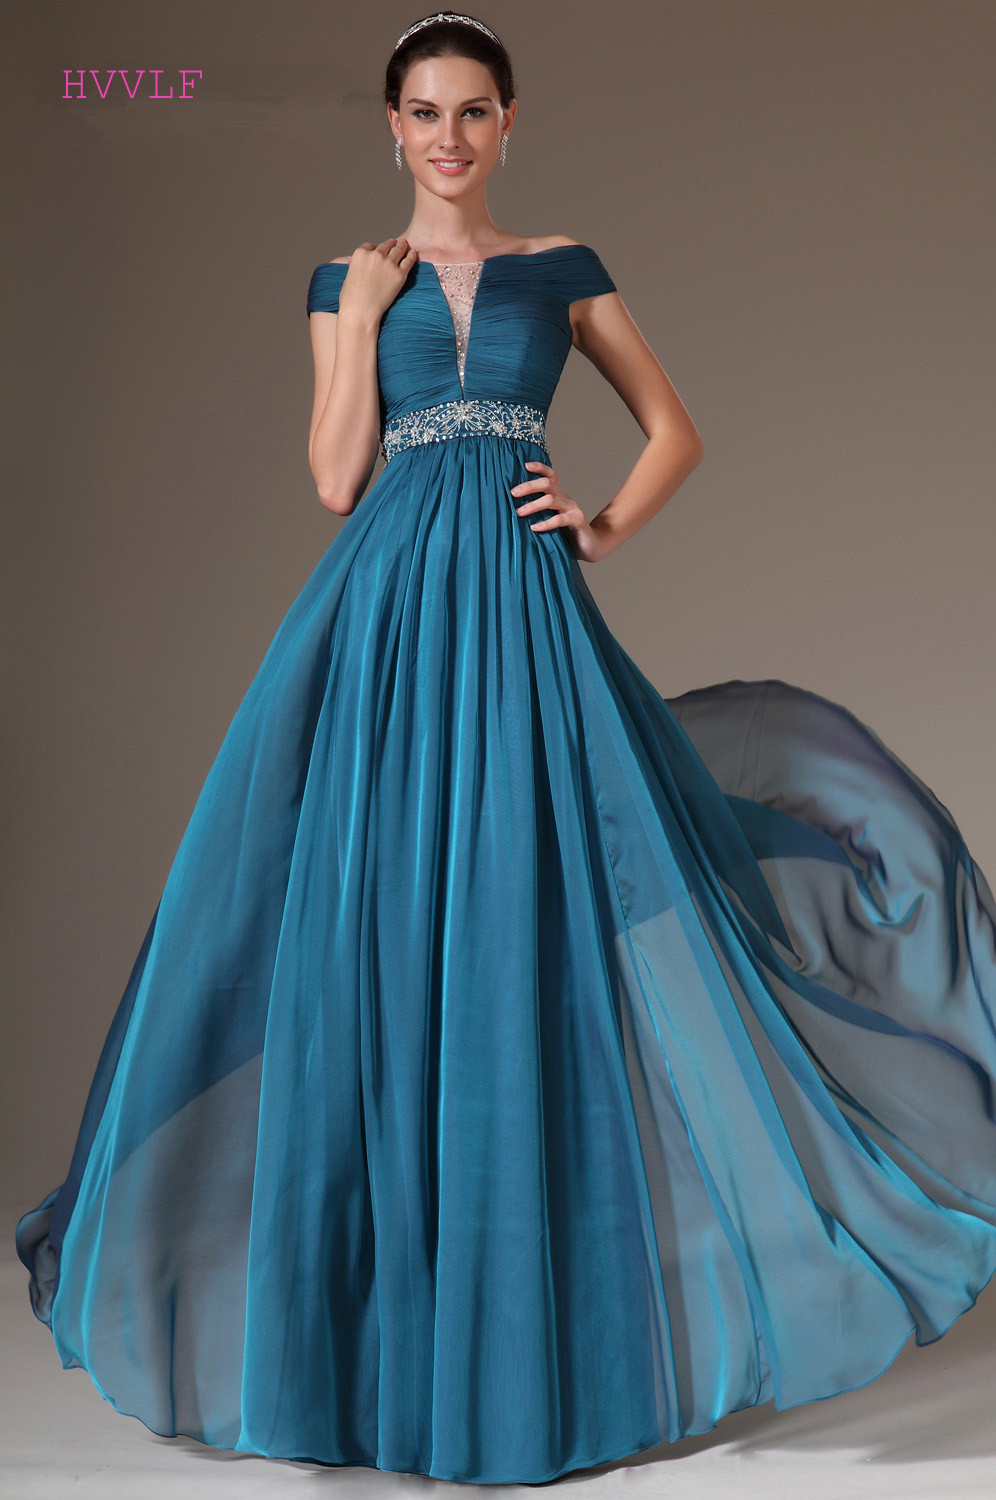 Blue   Evening     Dresses   2019 A-line Cap Sleeves Chiffon Beaded Backless Plus Size Long   Evening   Gown Prom   Dresses   Robe De Soiree